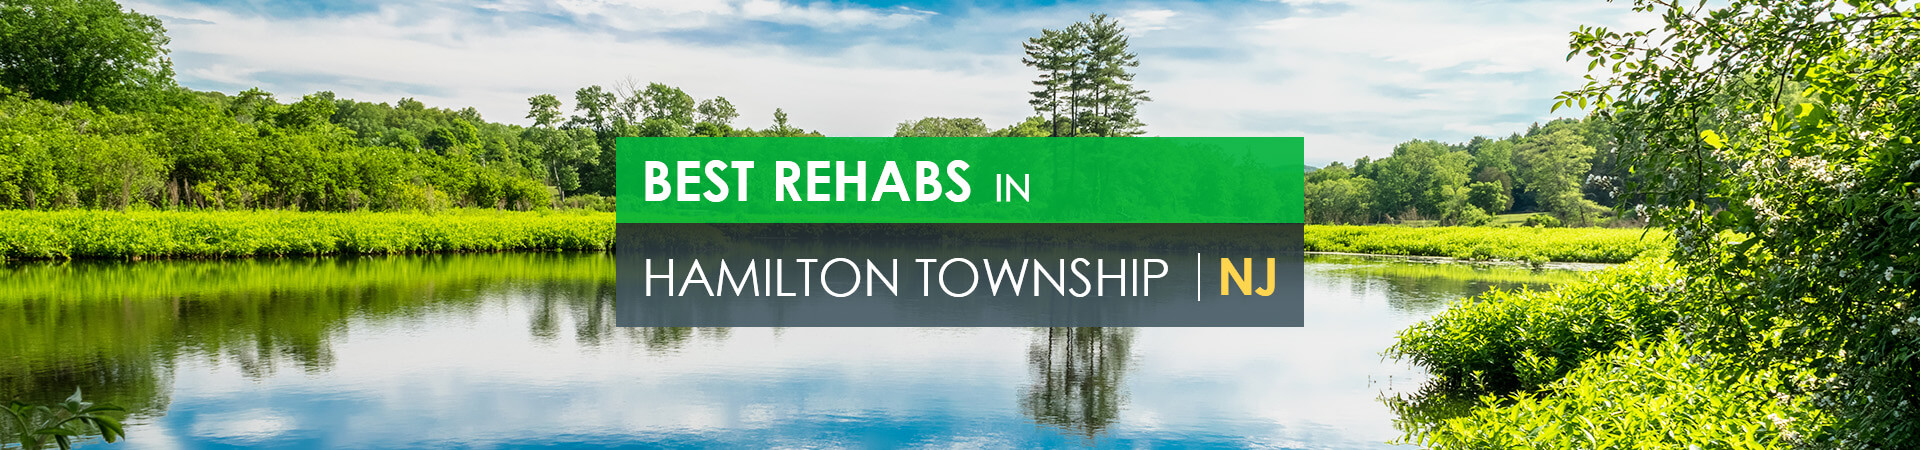 Best rehabs in Hamilton Township, NJ